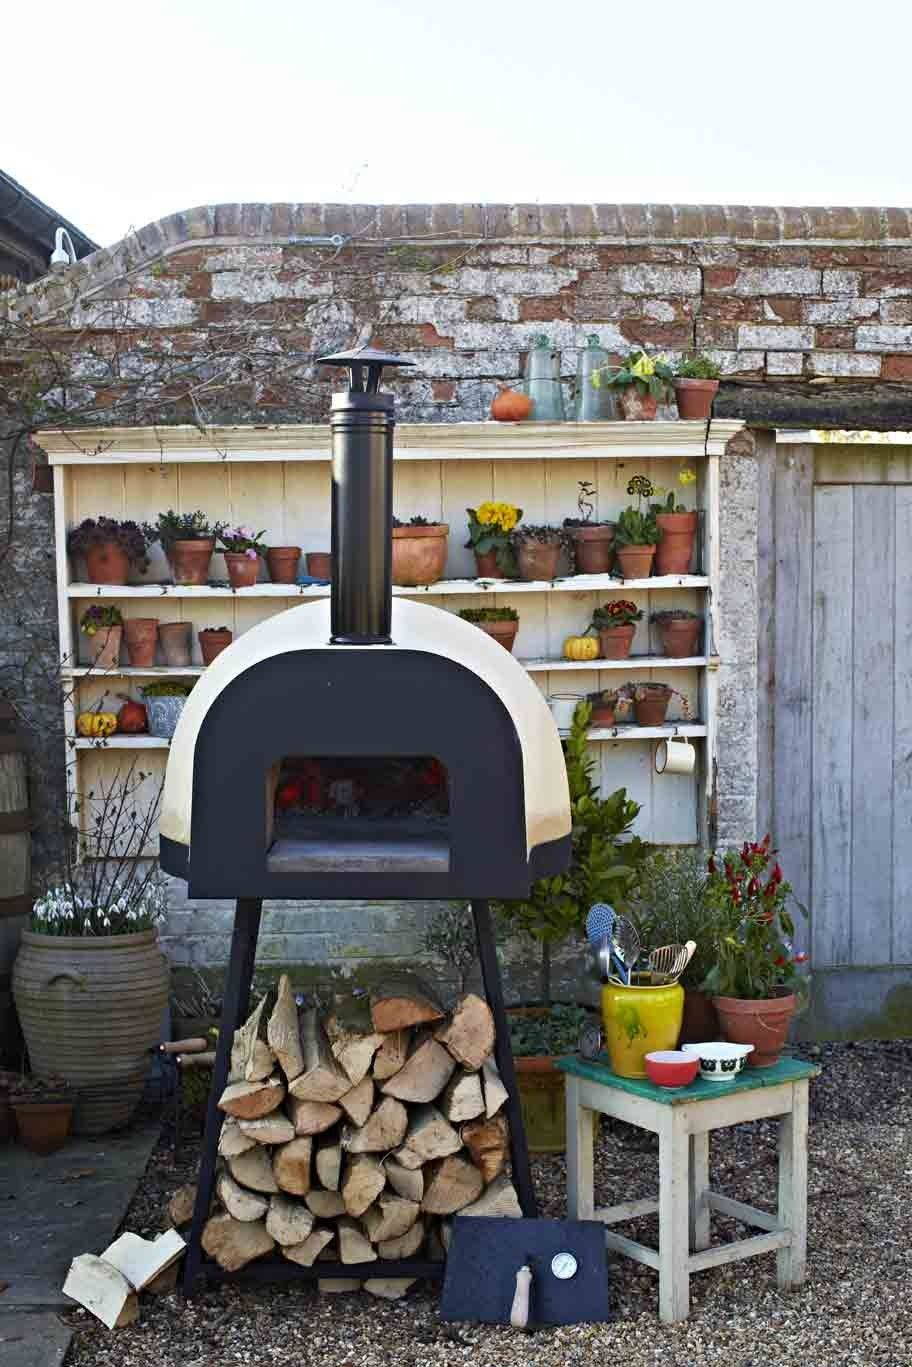 Jamie Oliver dome60 Wood Fired Oven Luxury outdoor